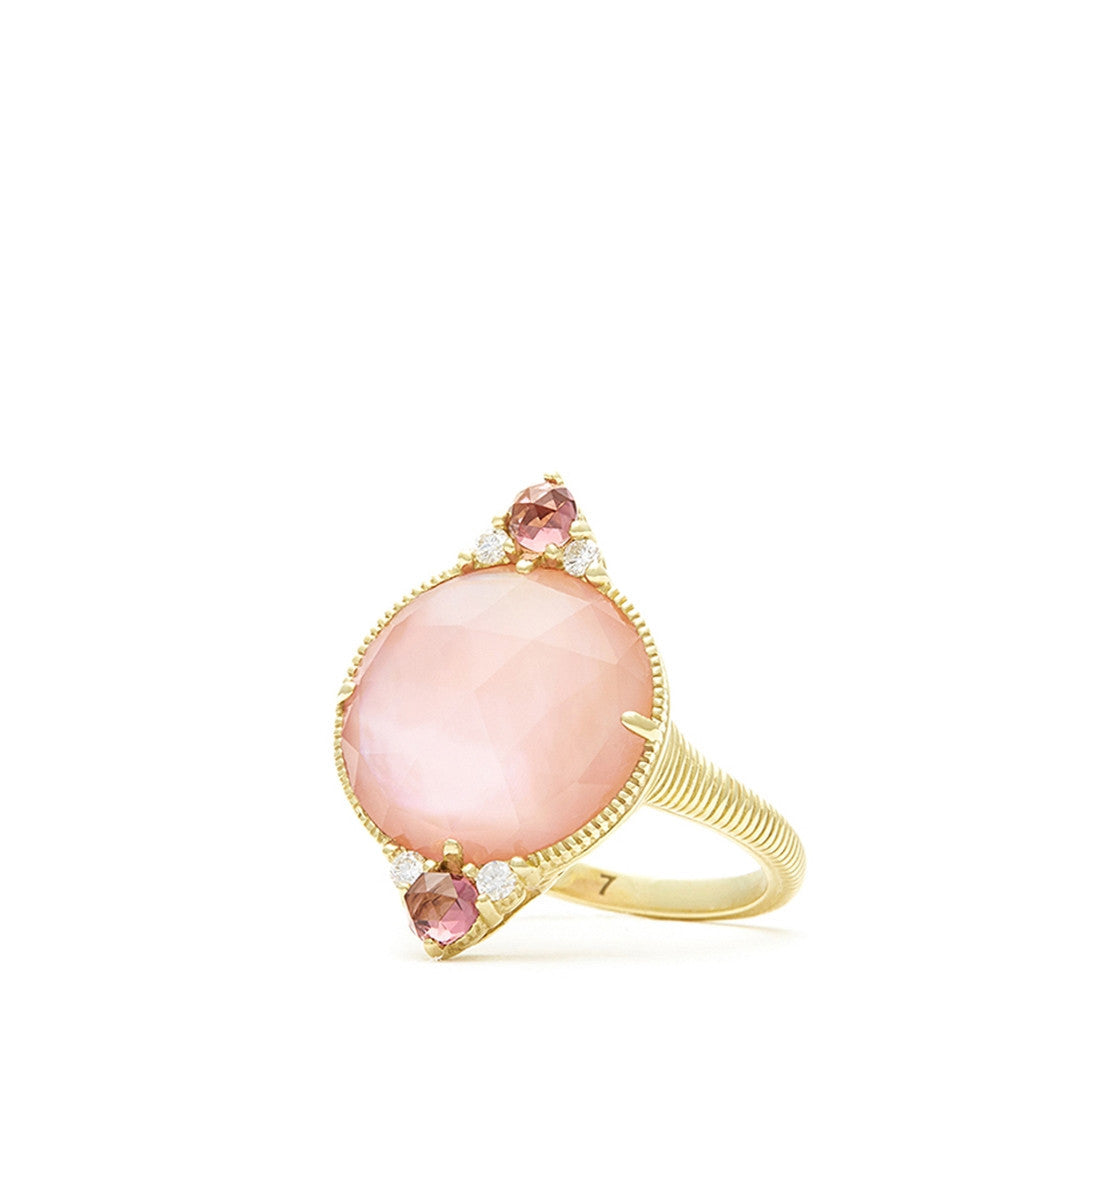 Allure Pink Mother of Pearl Small Cabochon Ring, Ring, Judith Ripka - Ora by D'Amore Jewelers